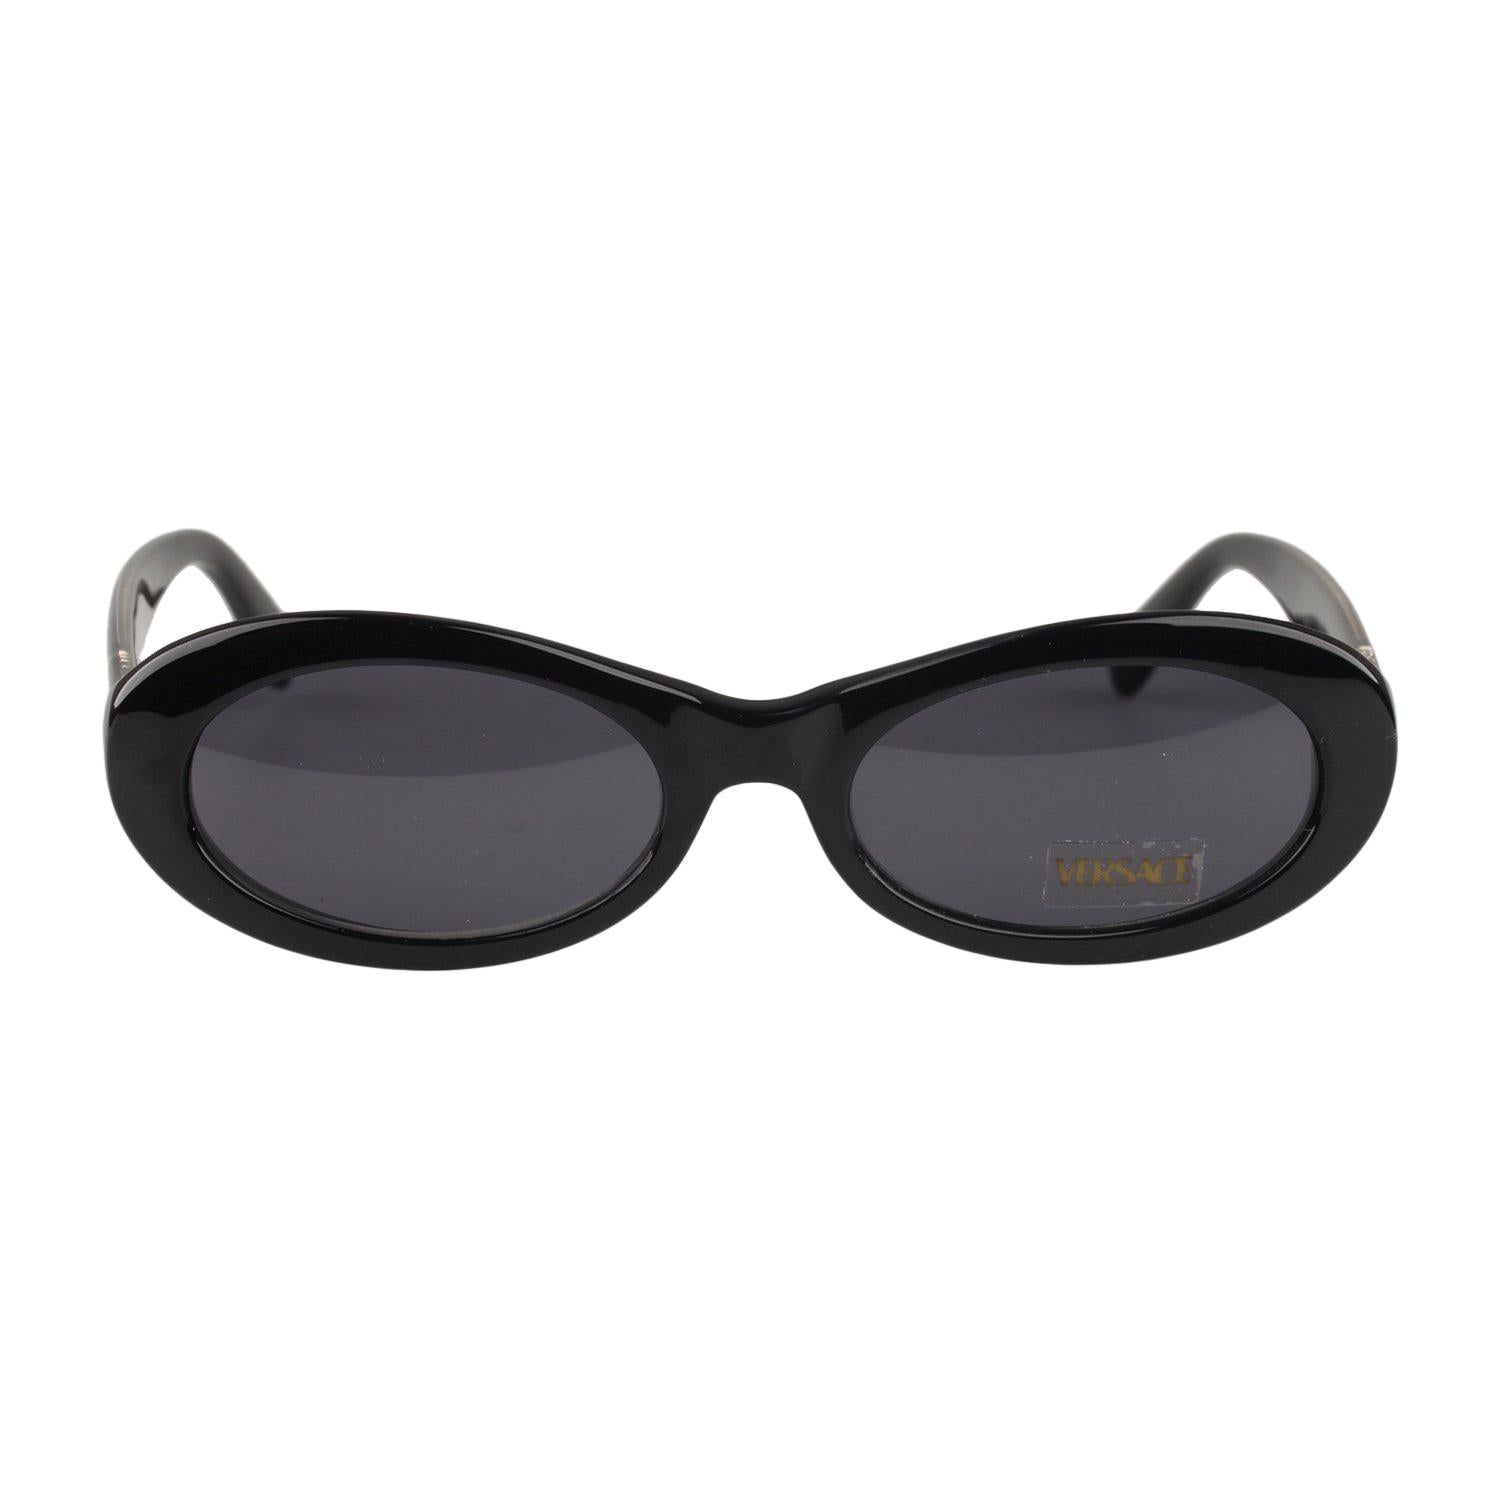 a779c7d74a2d Vintage Sunglasses For Sale in Italy - 1stdibs